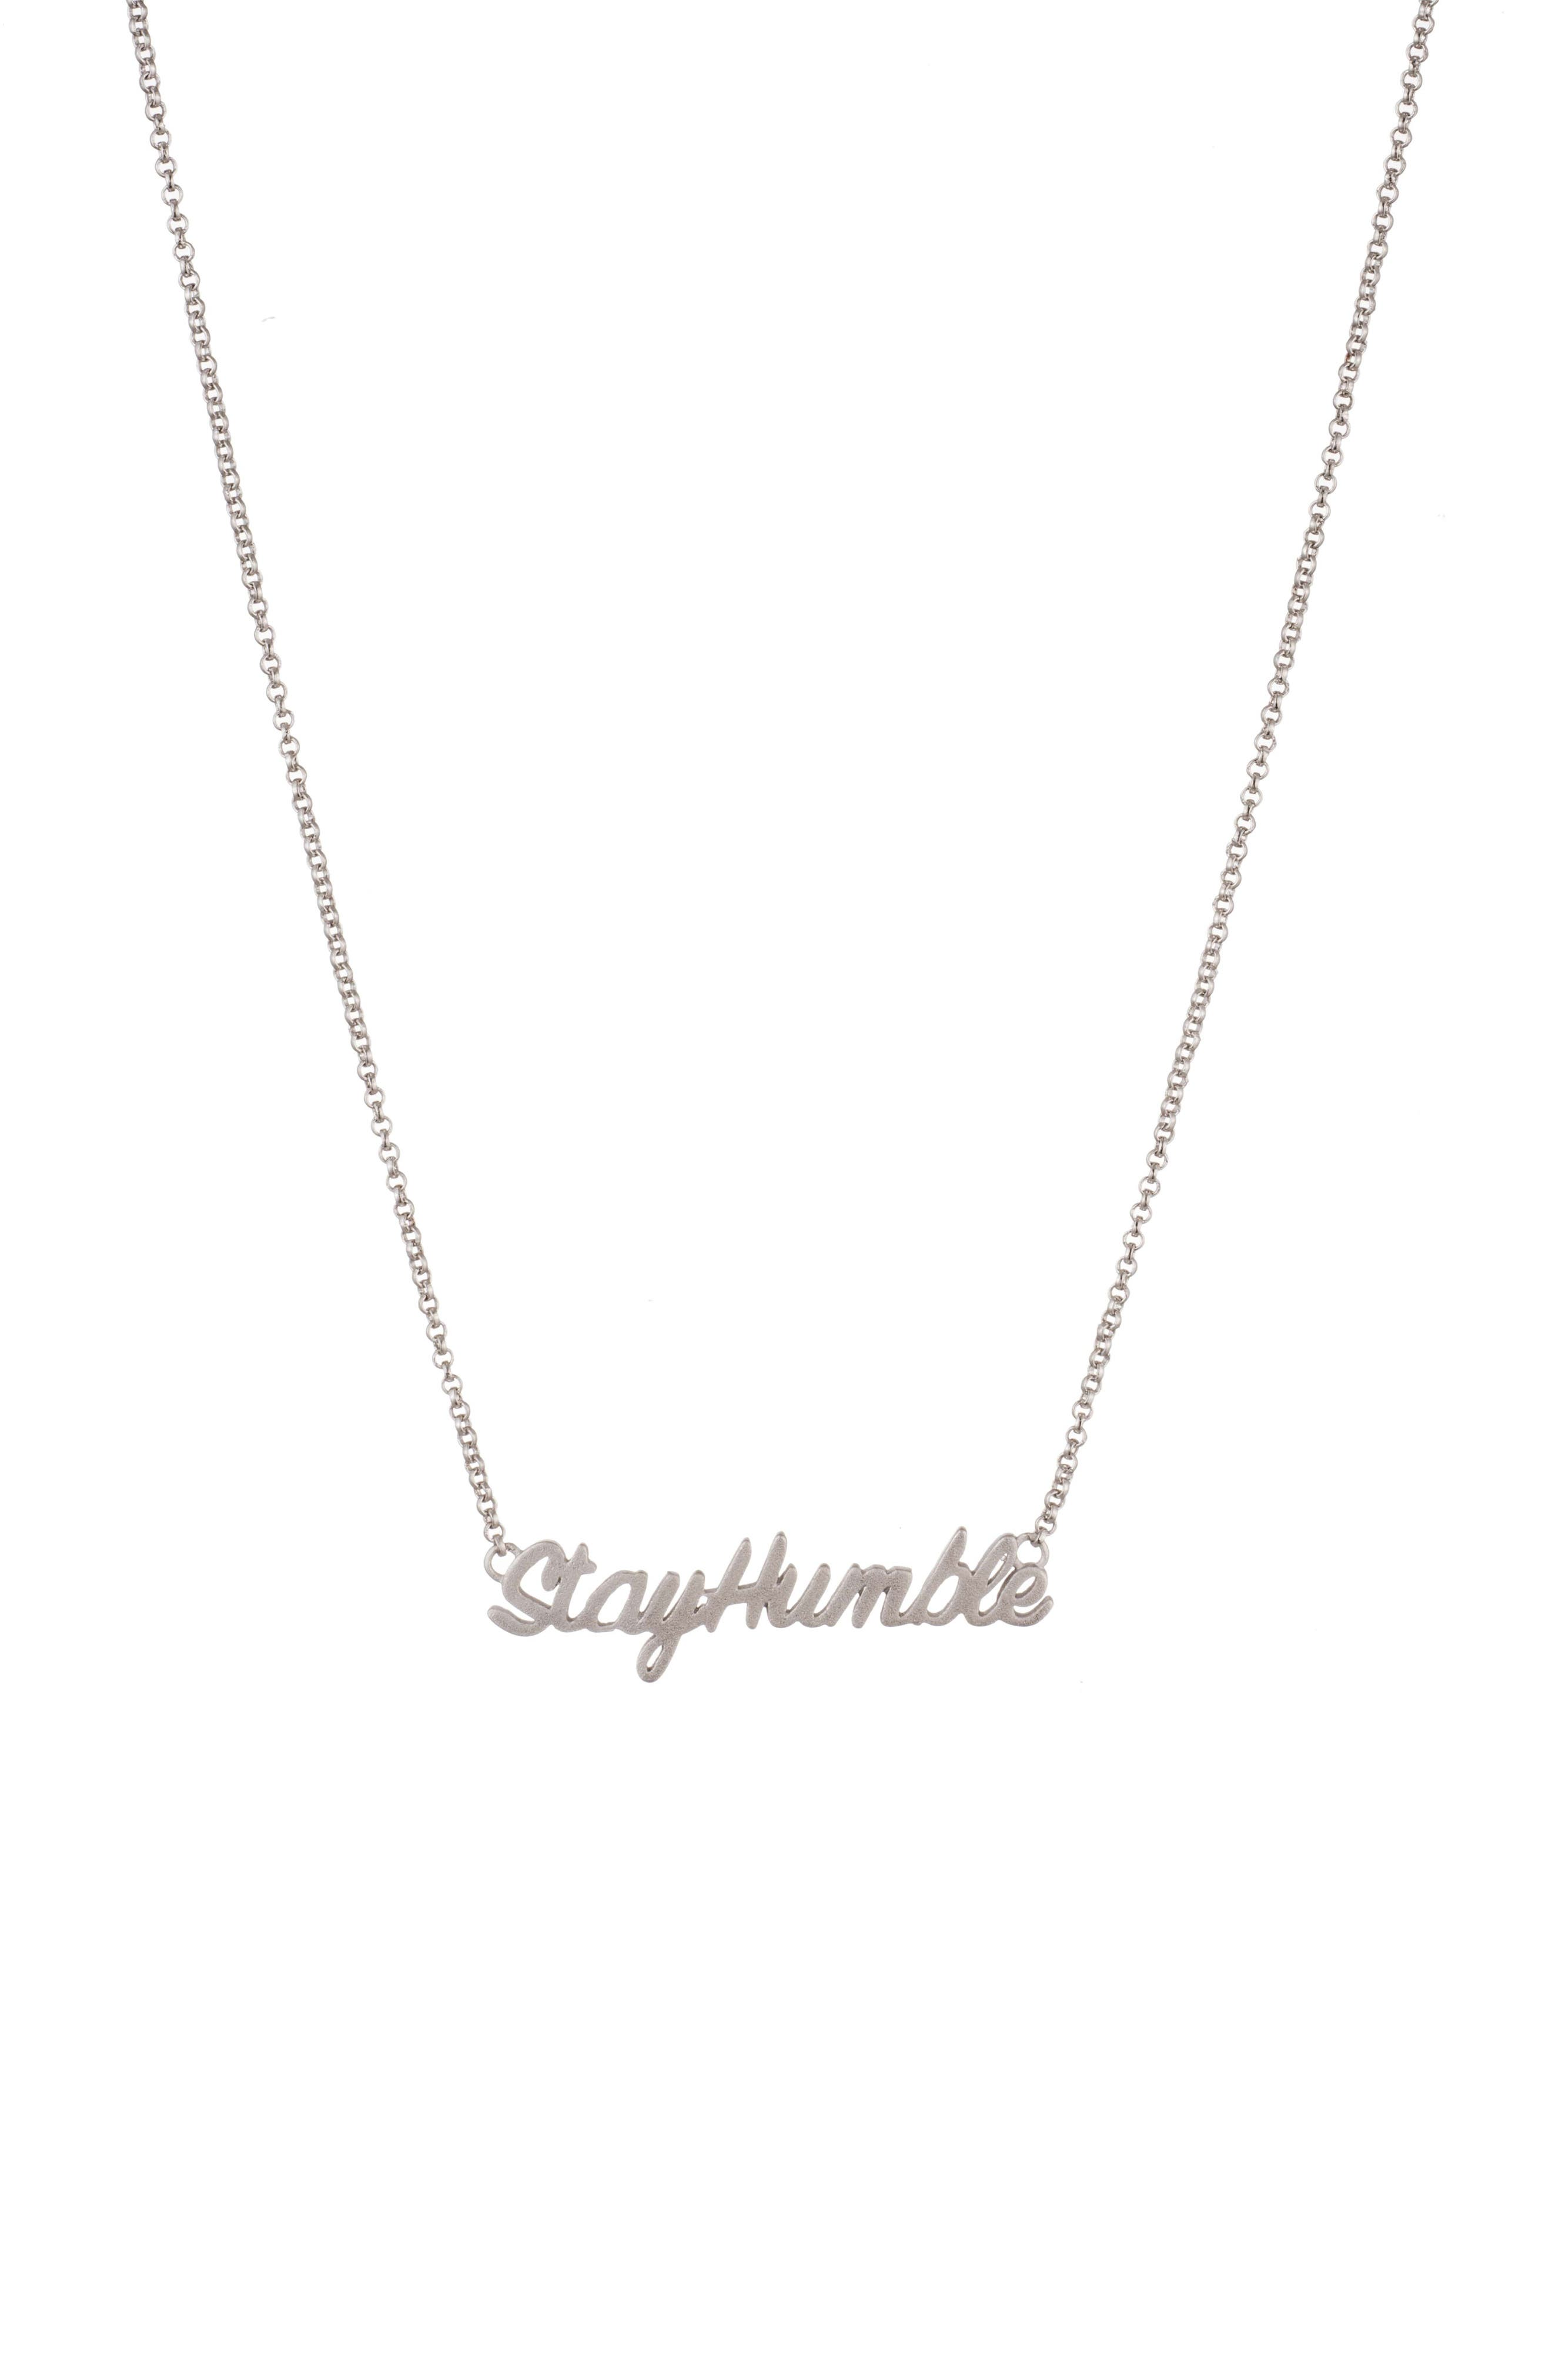 Stay Humble Necklace,                         Main,                         color, 040